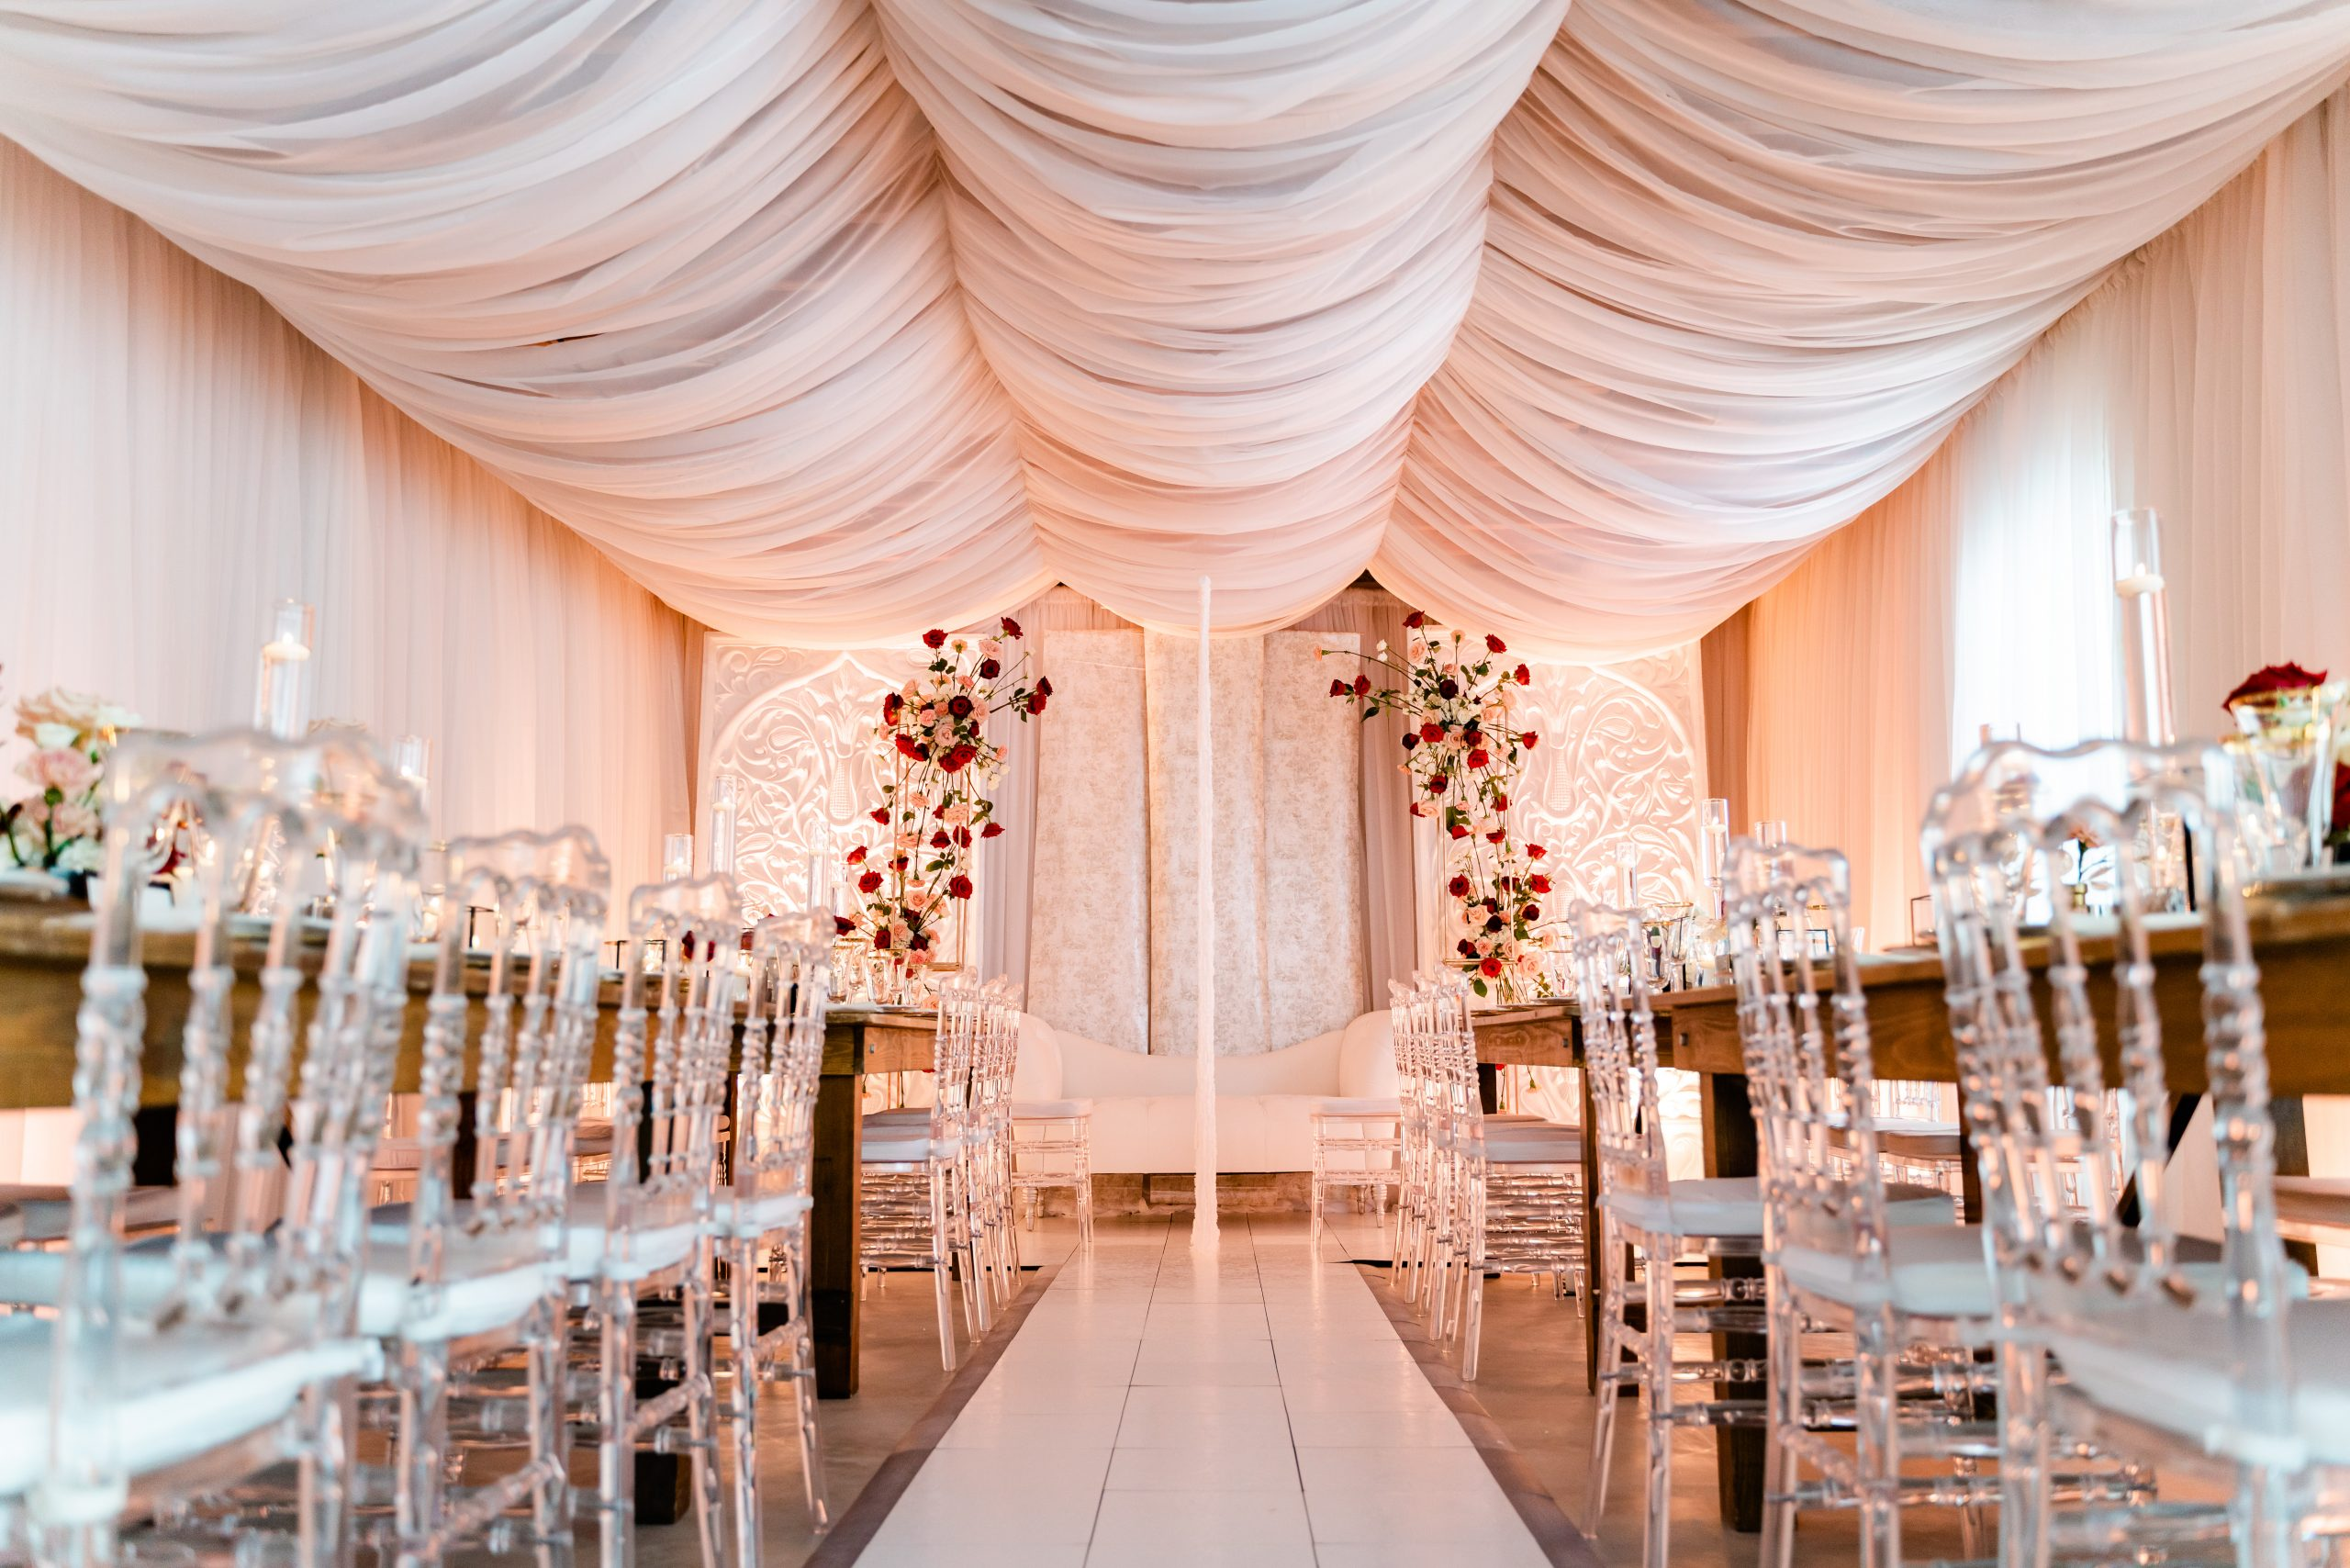 DESIGNING A WEDDING IN TWO WEEKS